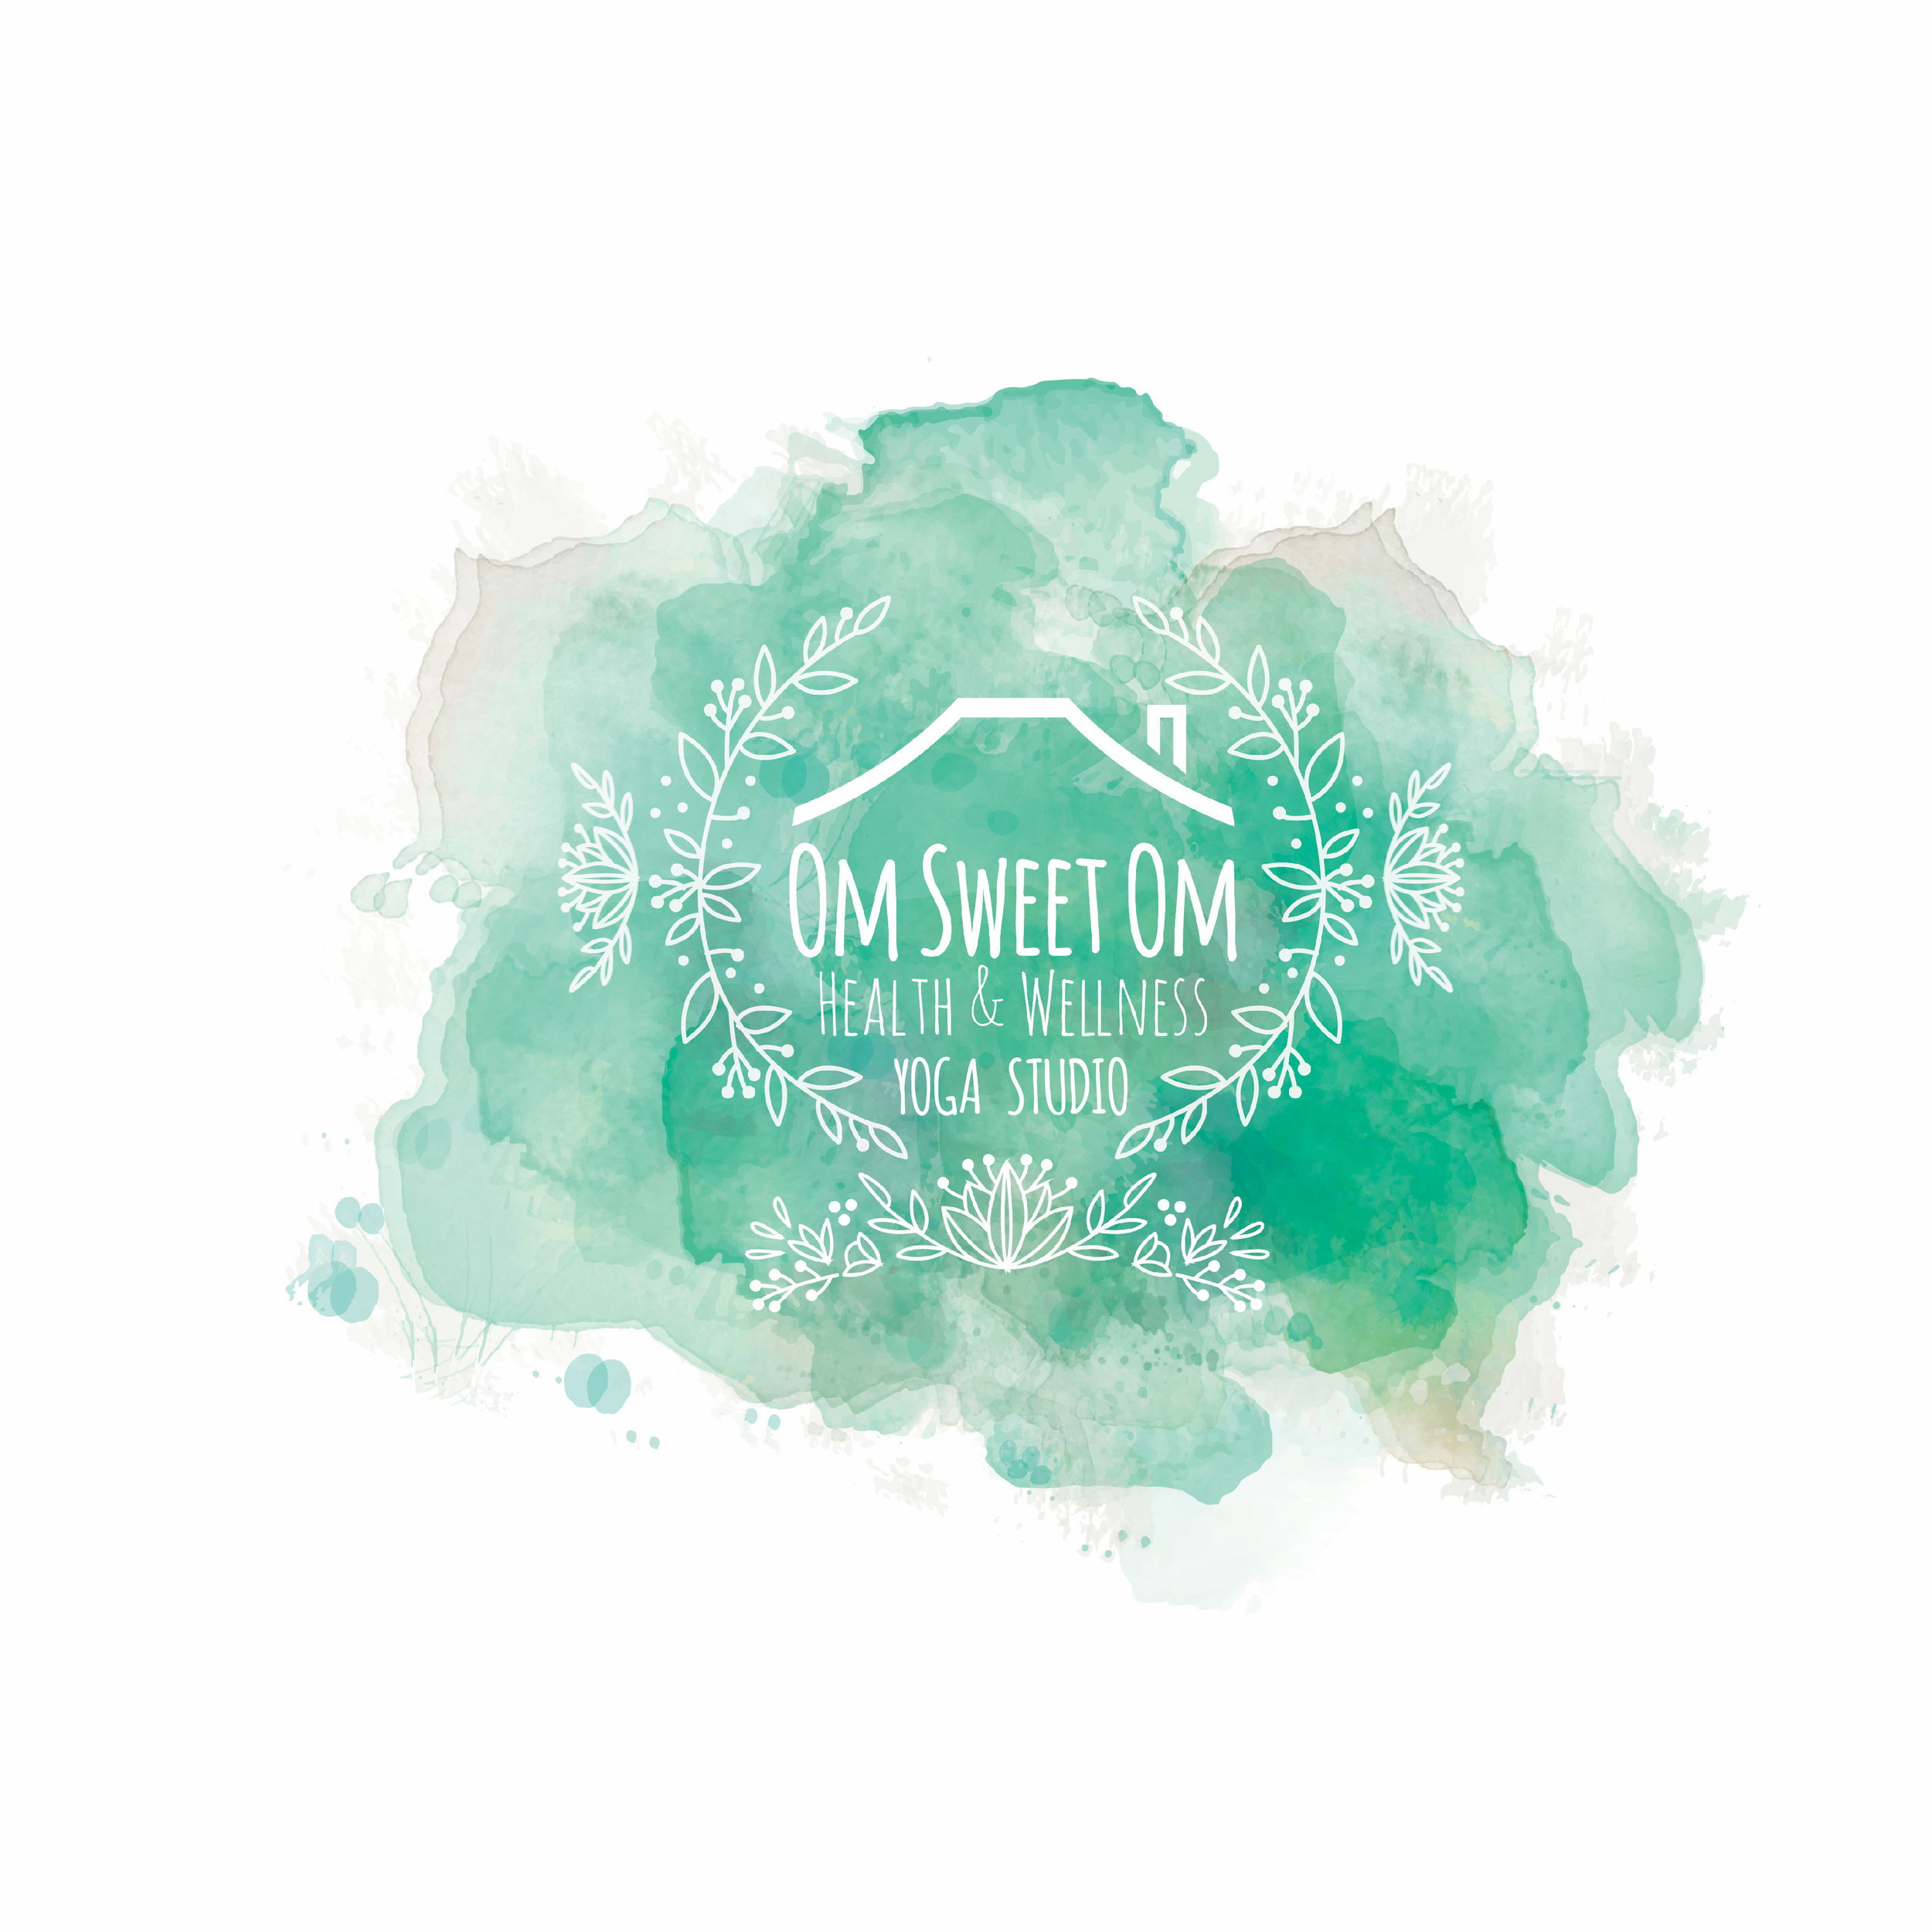 om sweet om Logo Watercolour.jpg